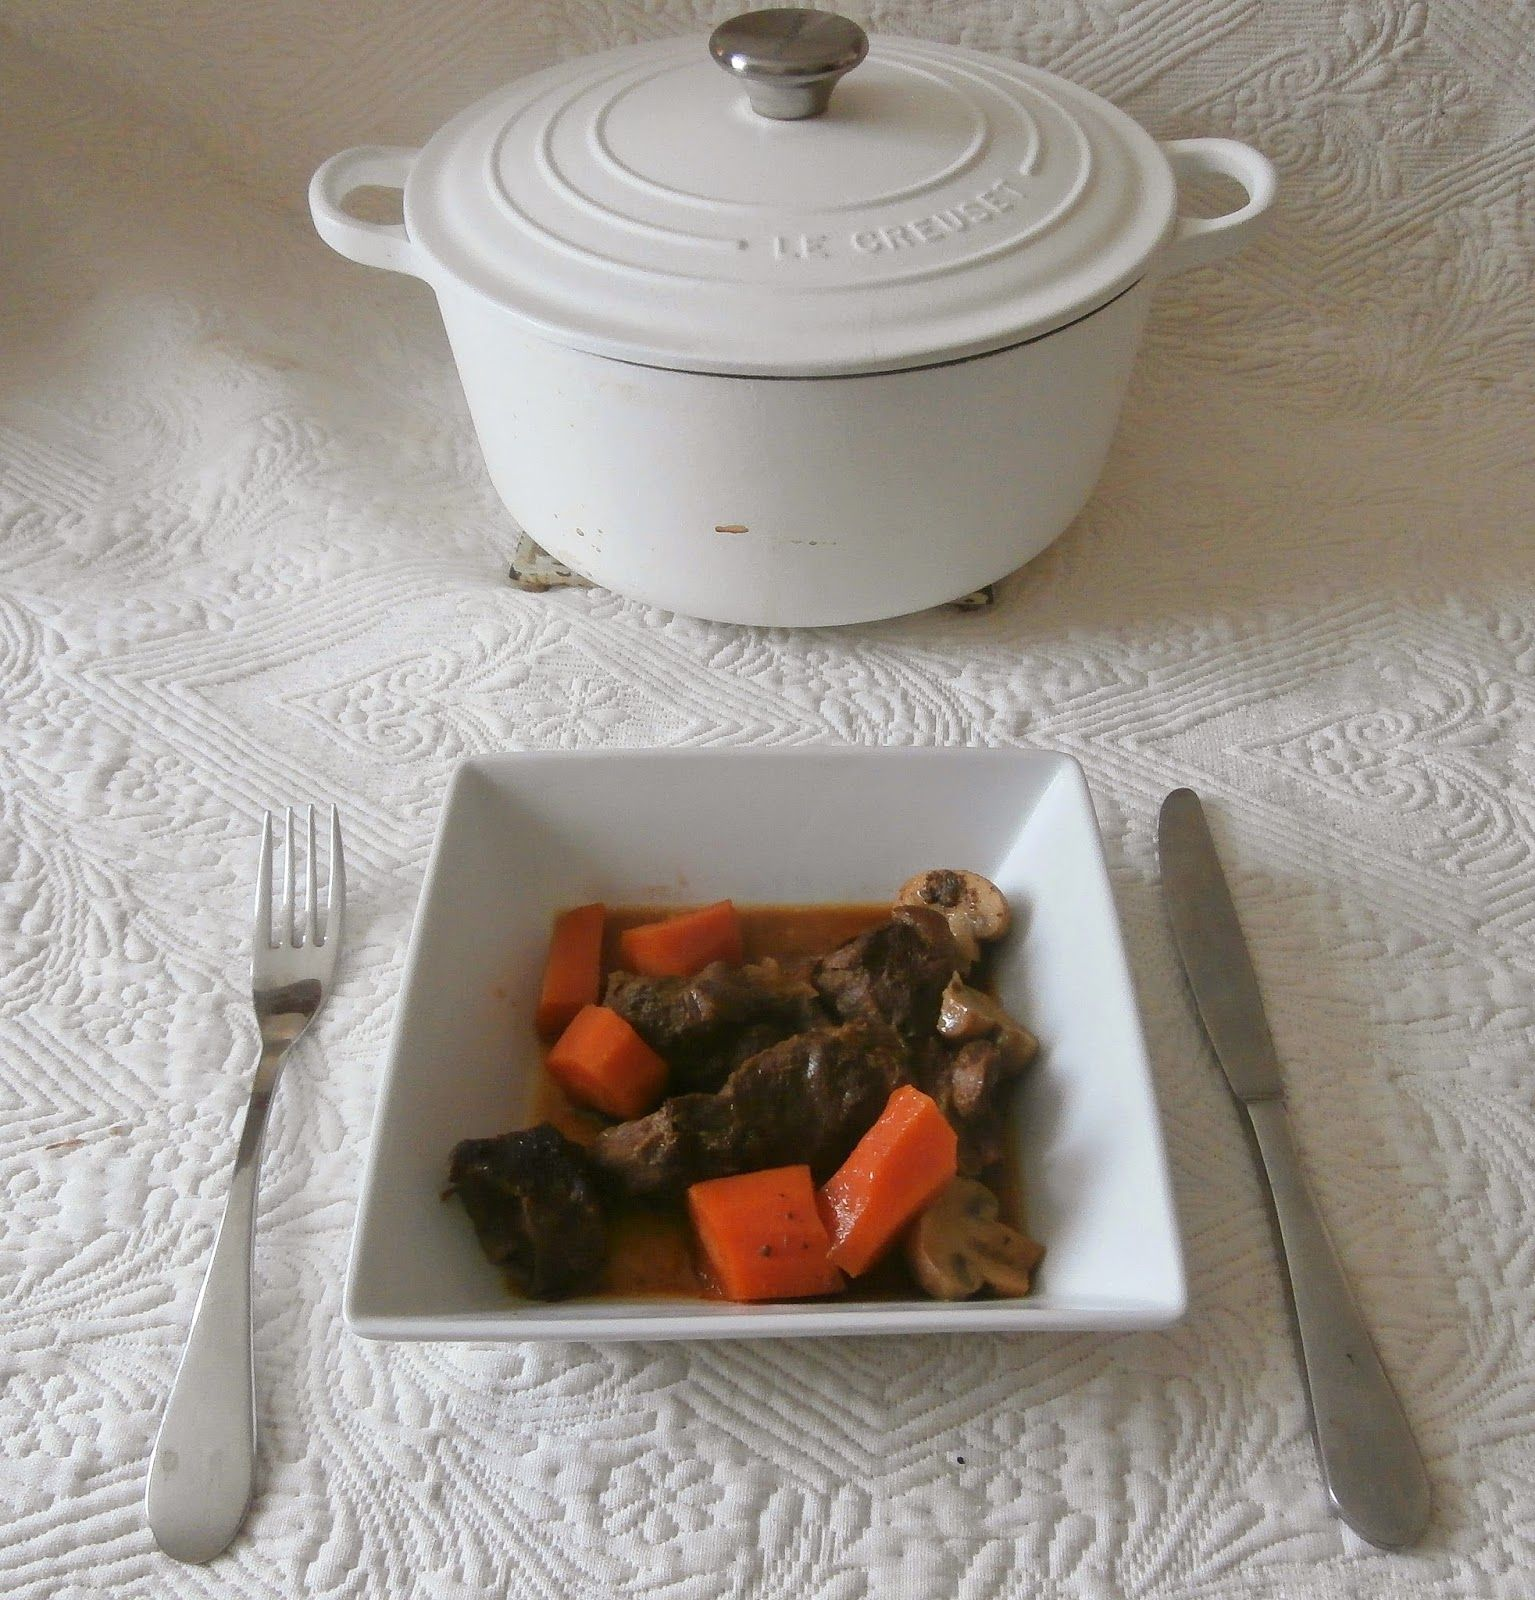 My Culinary Curriculum: Boeuf braisé aux 5 épices (Braised beef with 5 spi...